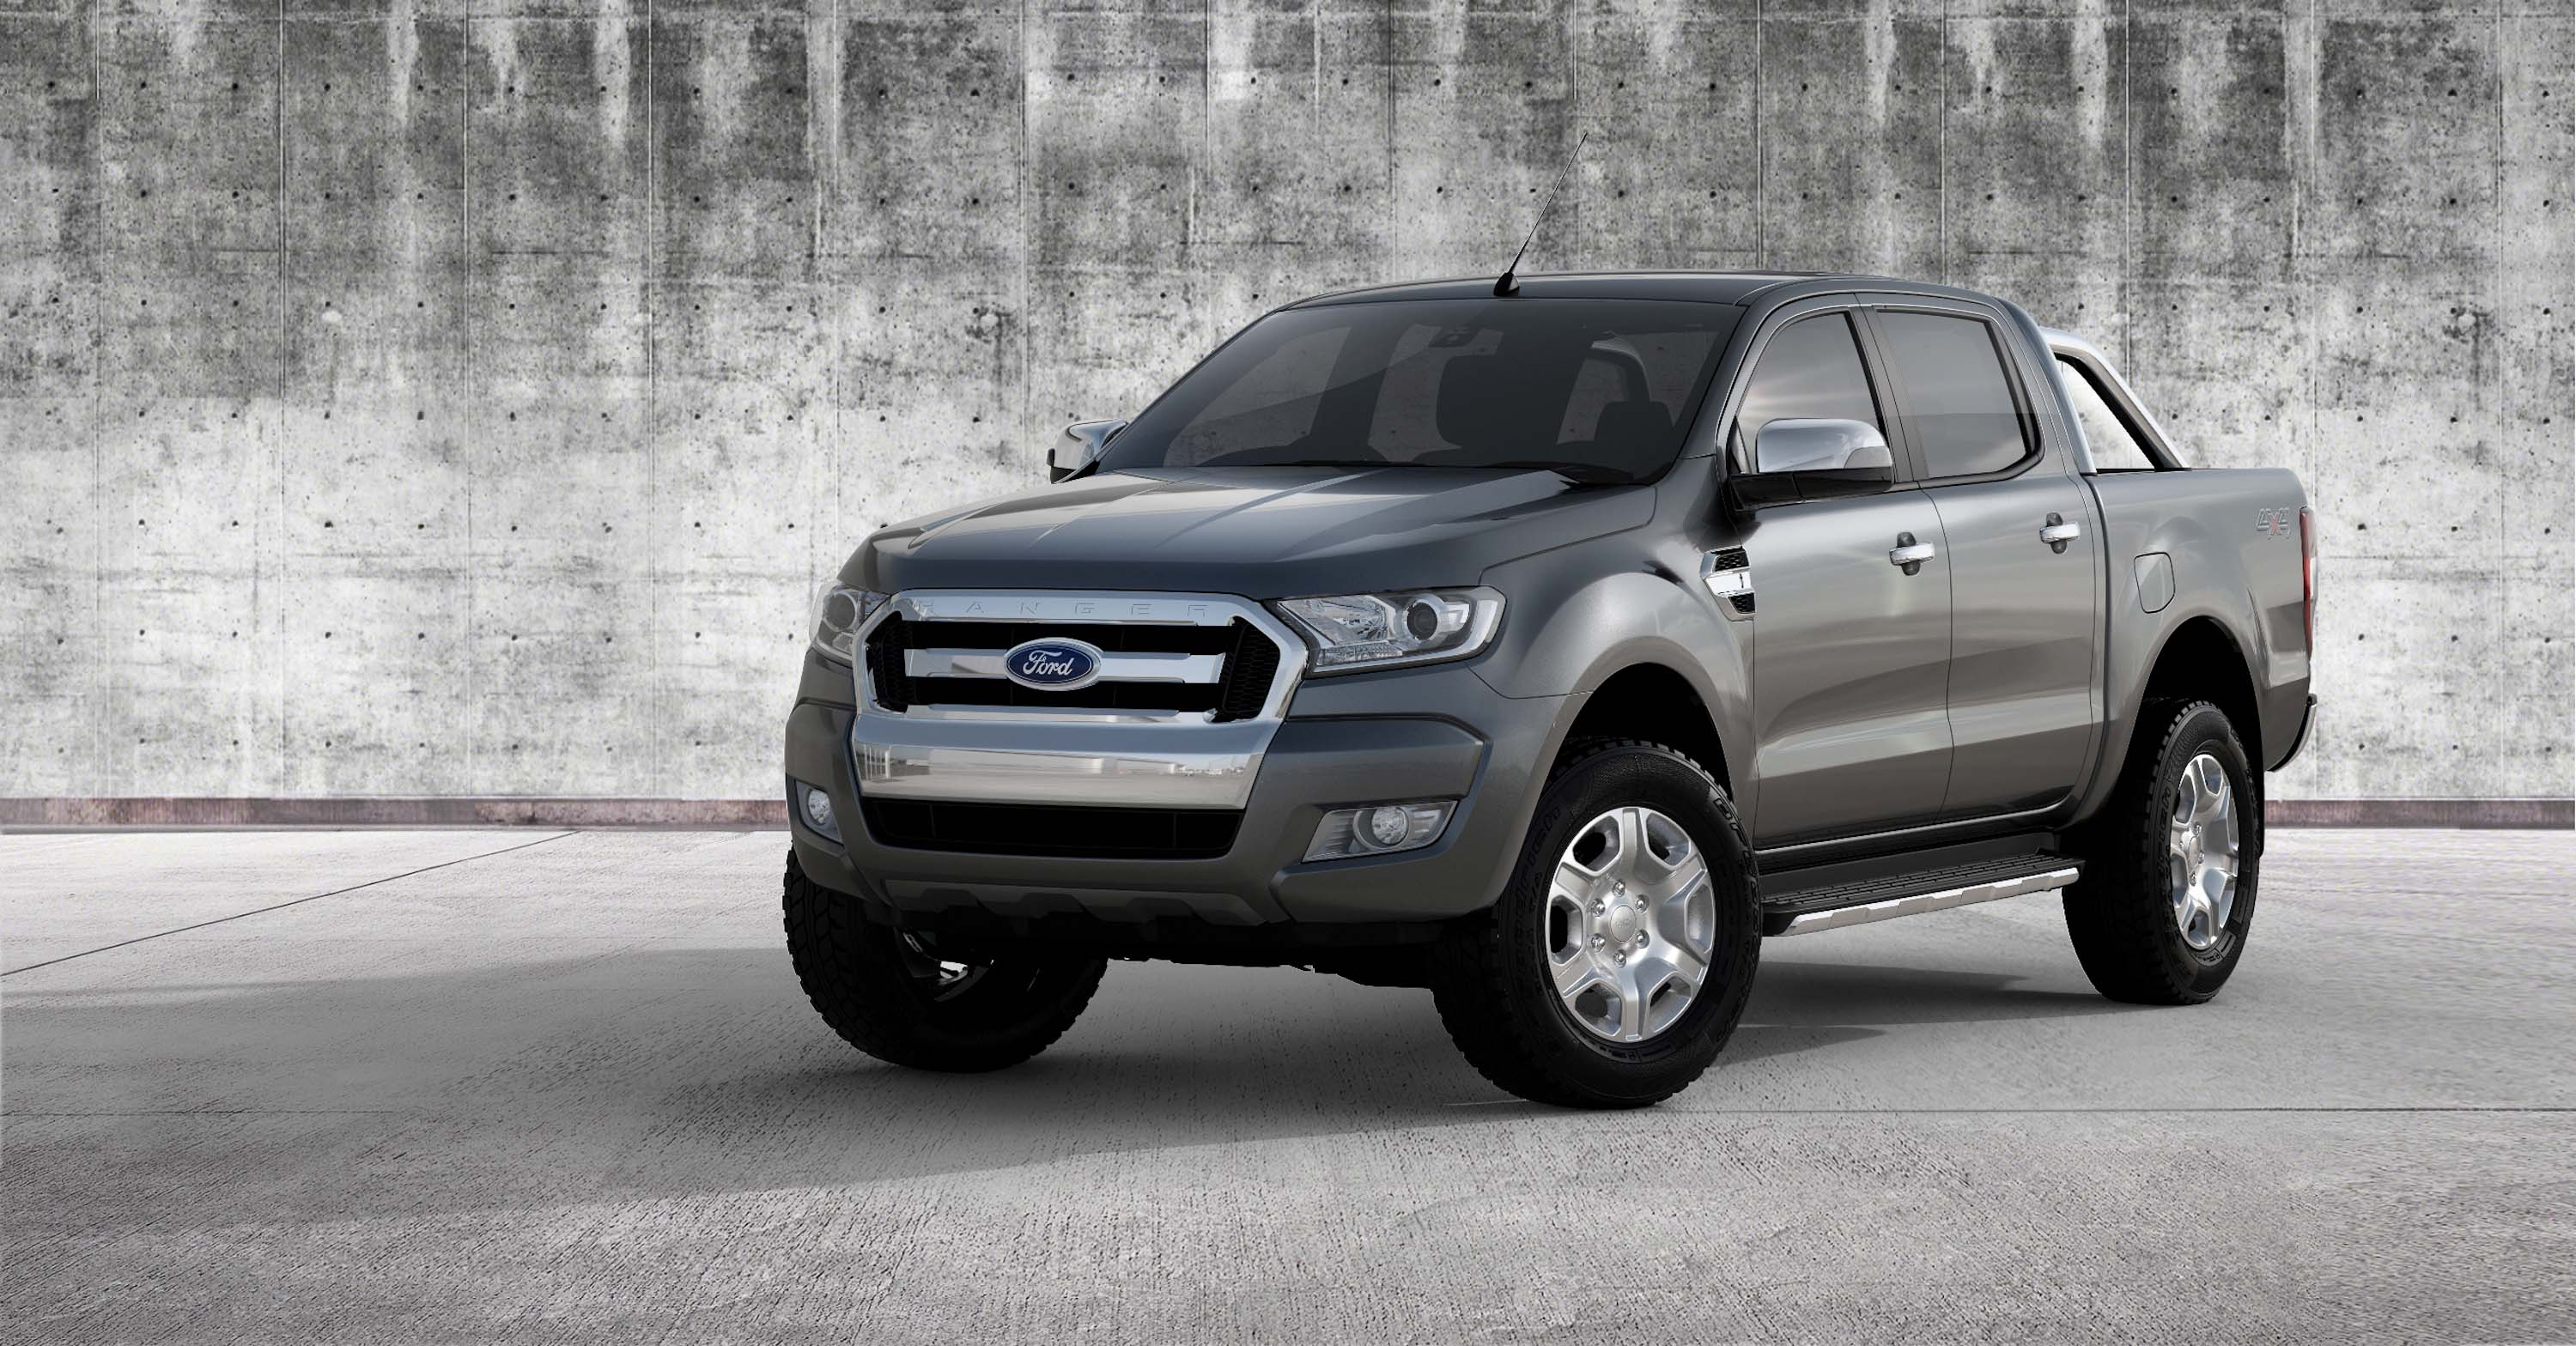 2018 ford ranger could be made and sold in the usa between the axles. Black Bedroom Furniture Sets. Home Design Ideas